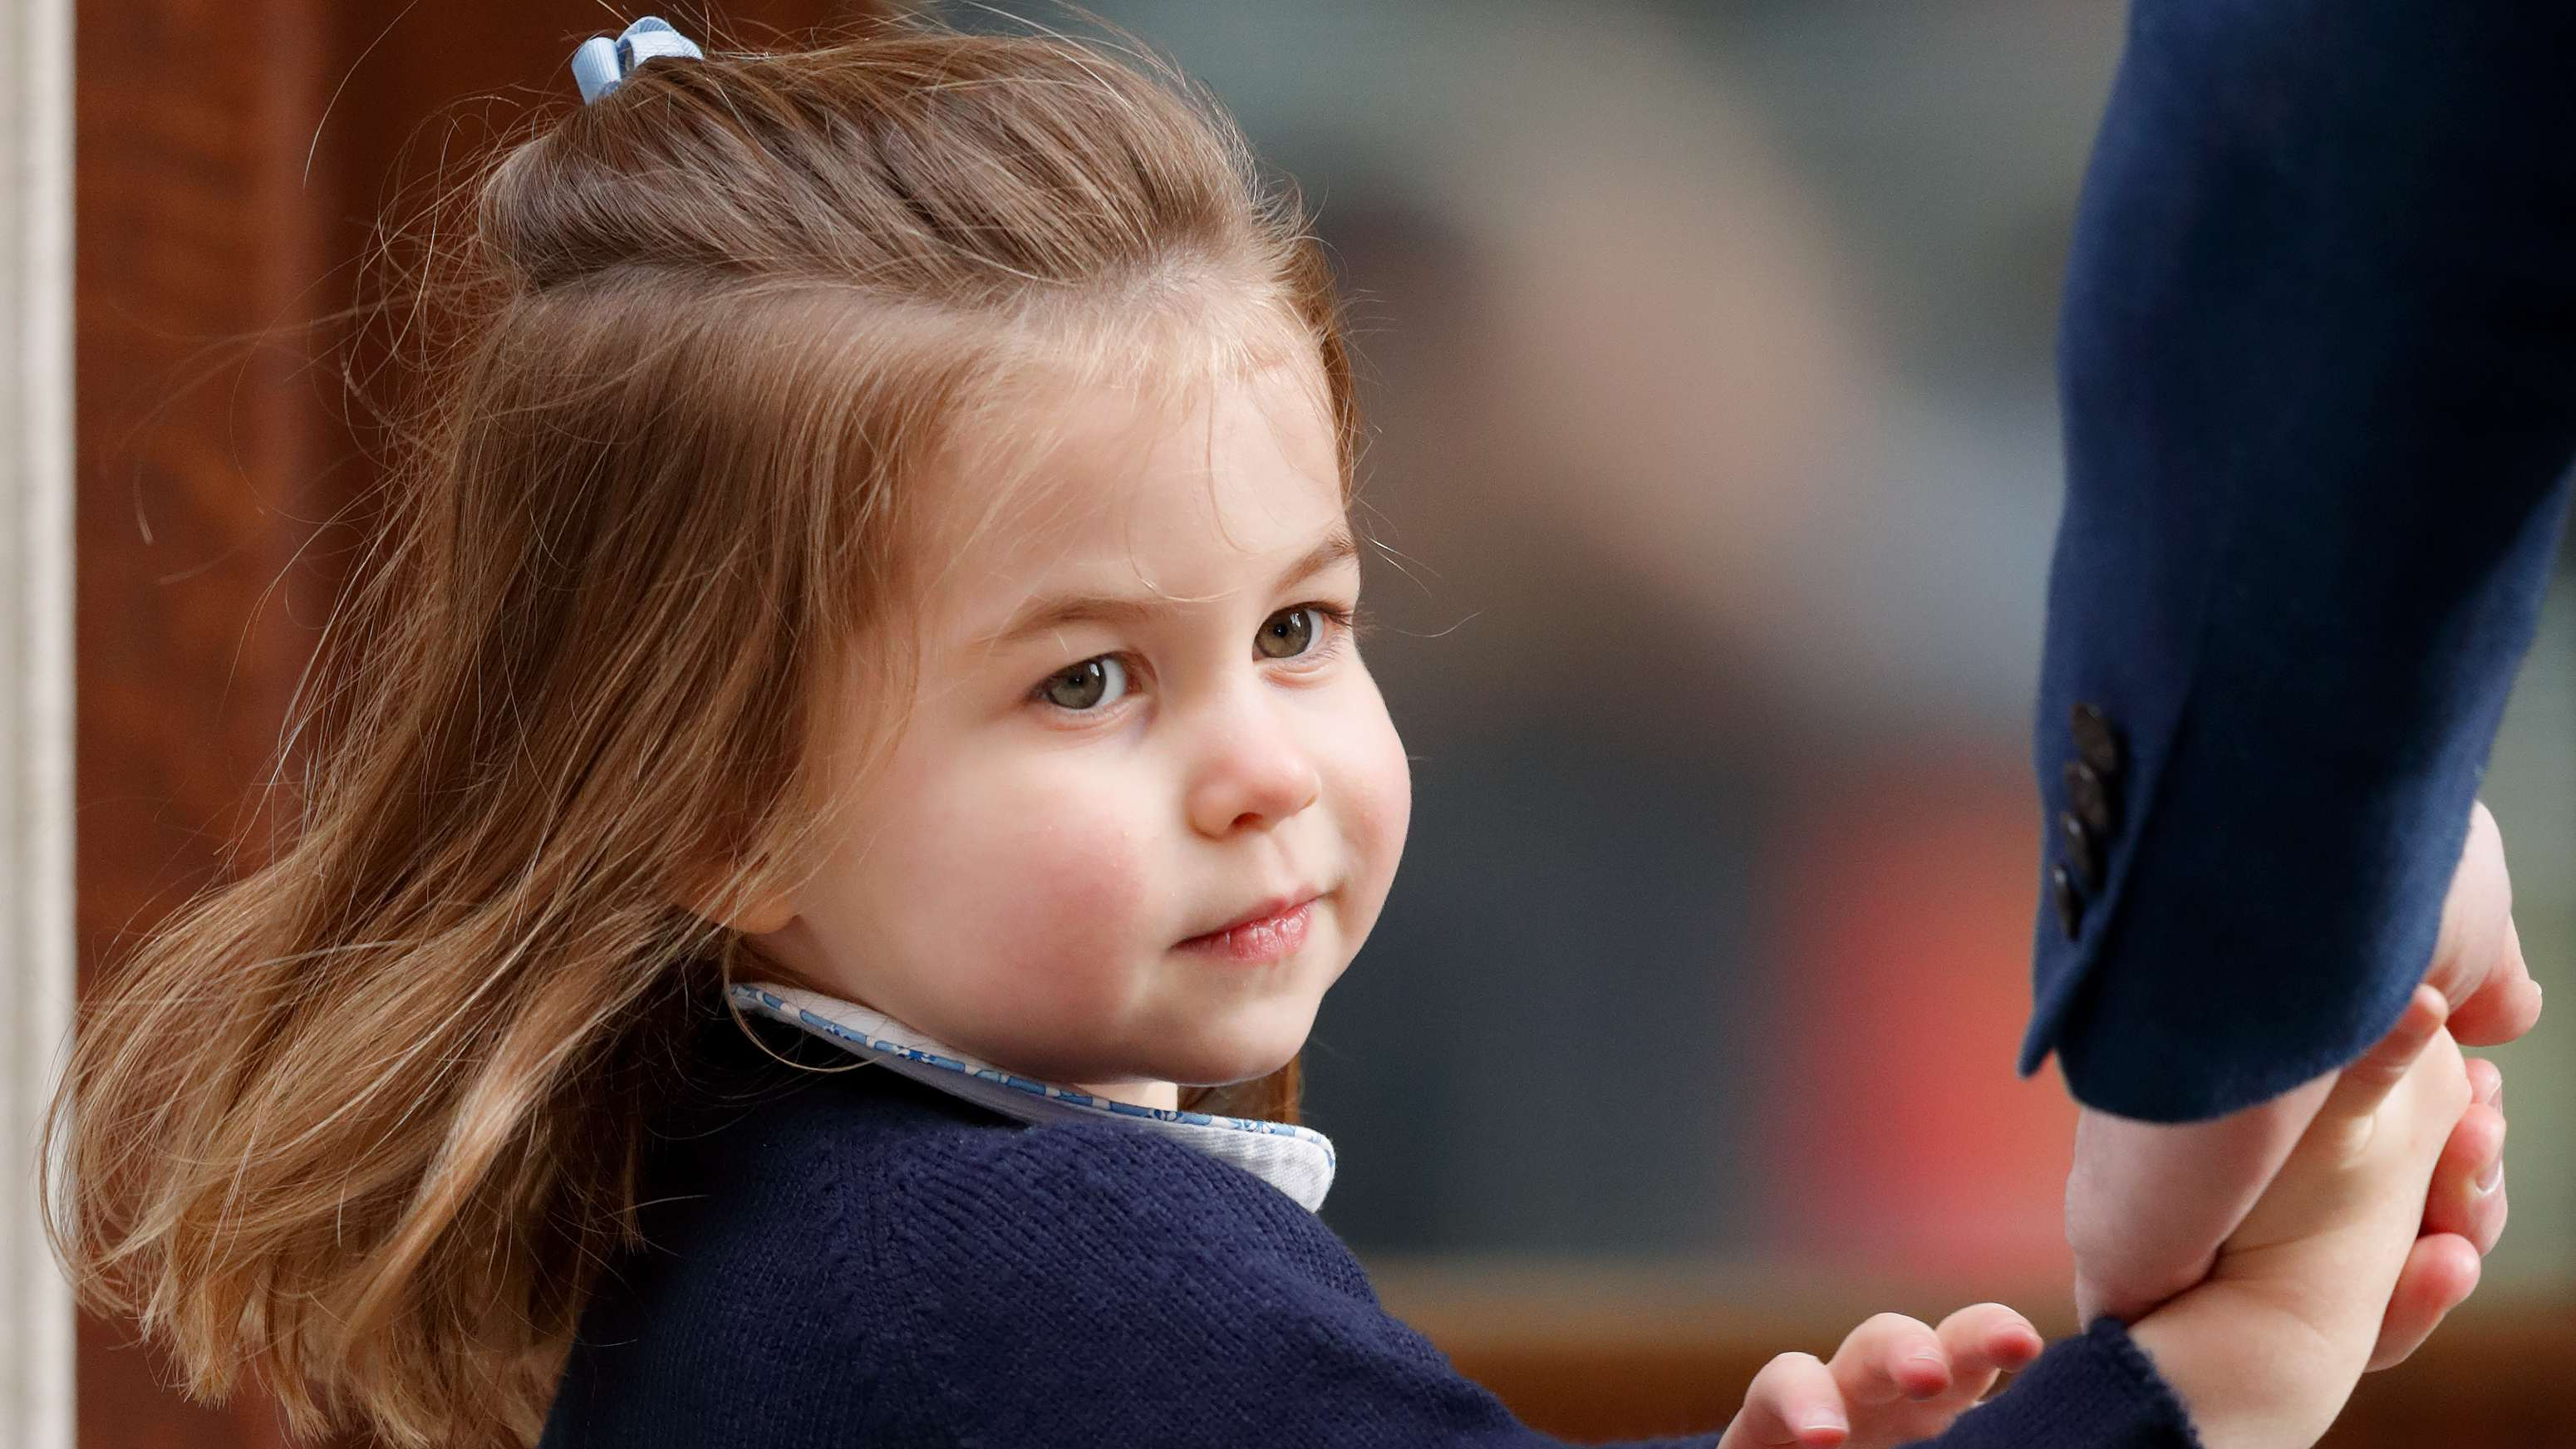 The massive milestone Princess Charlotte will celebrate this week